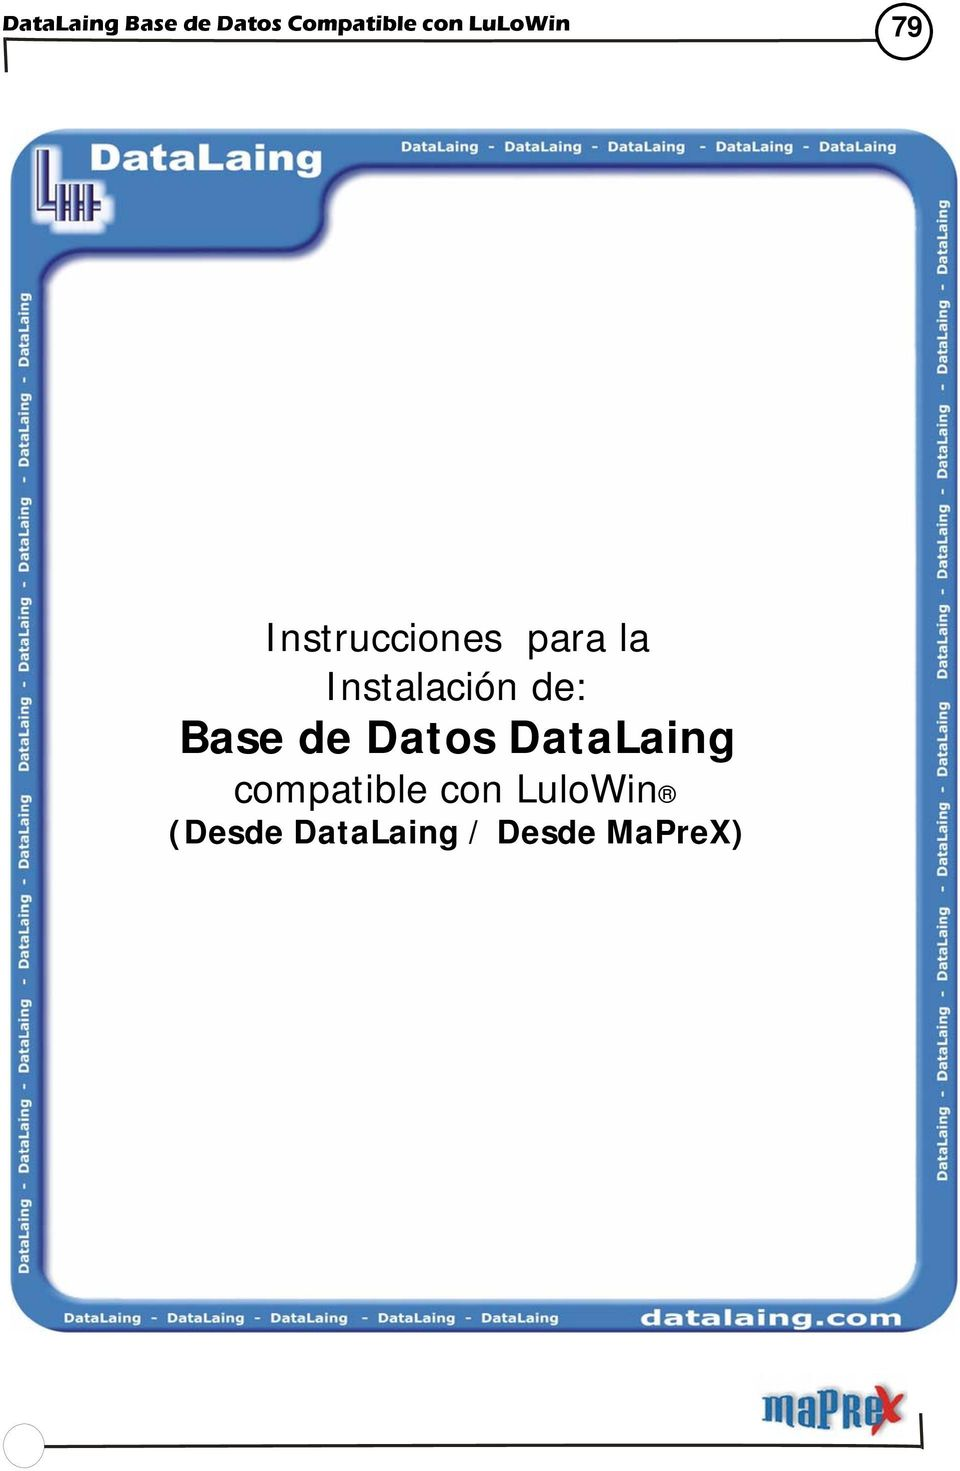 DataLaing compatible con